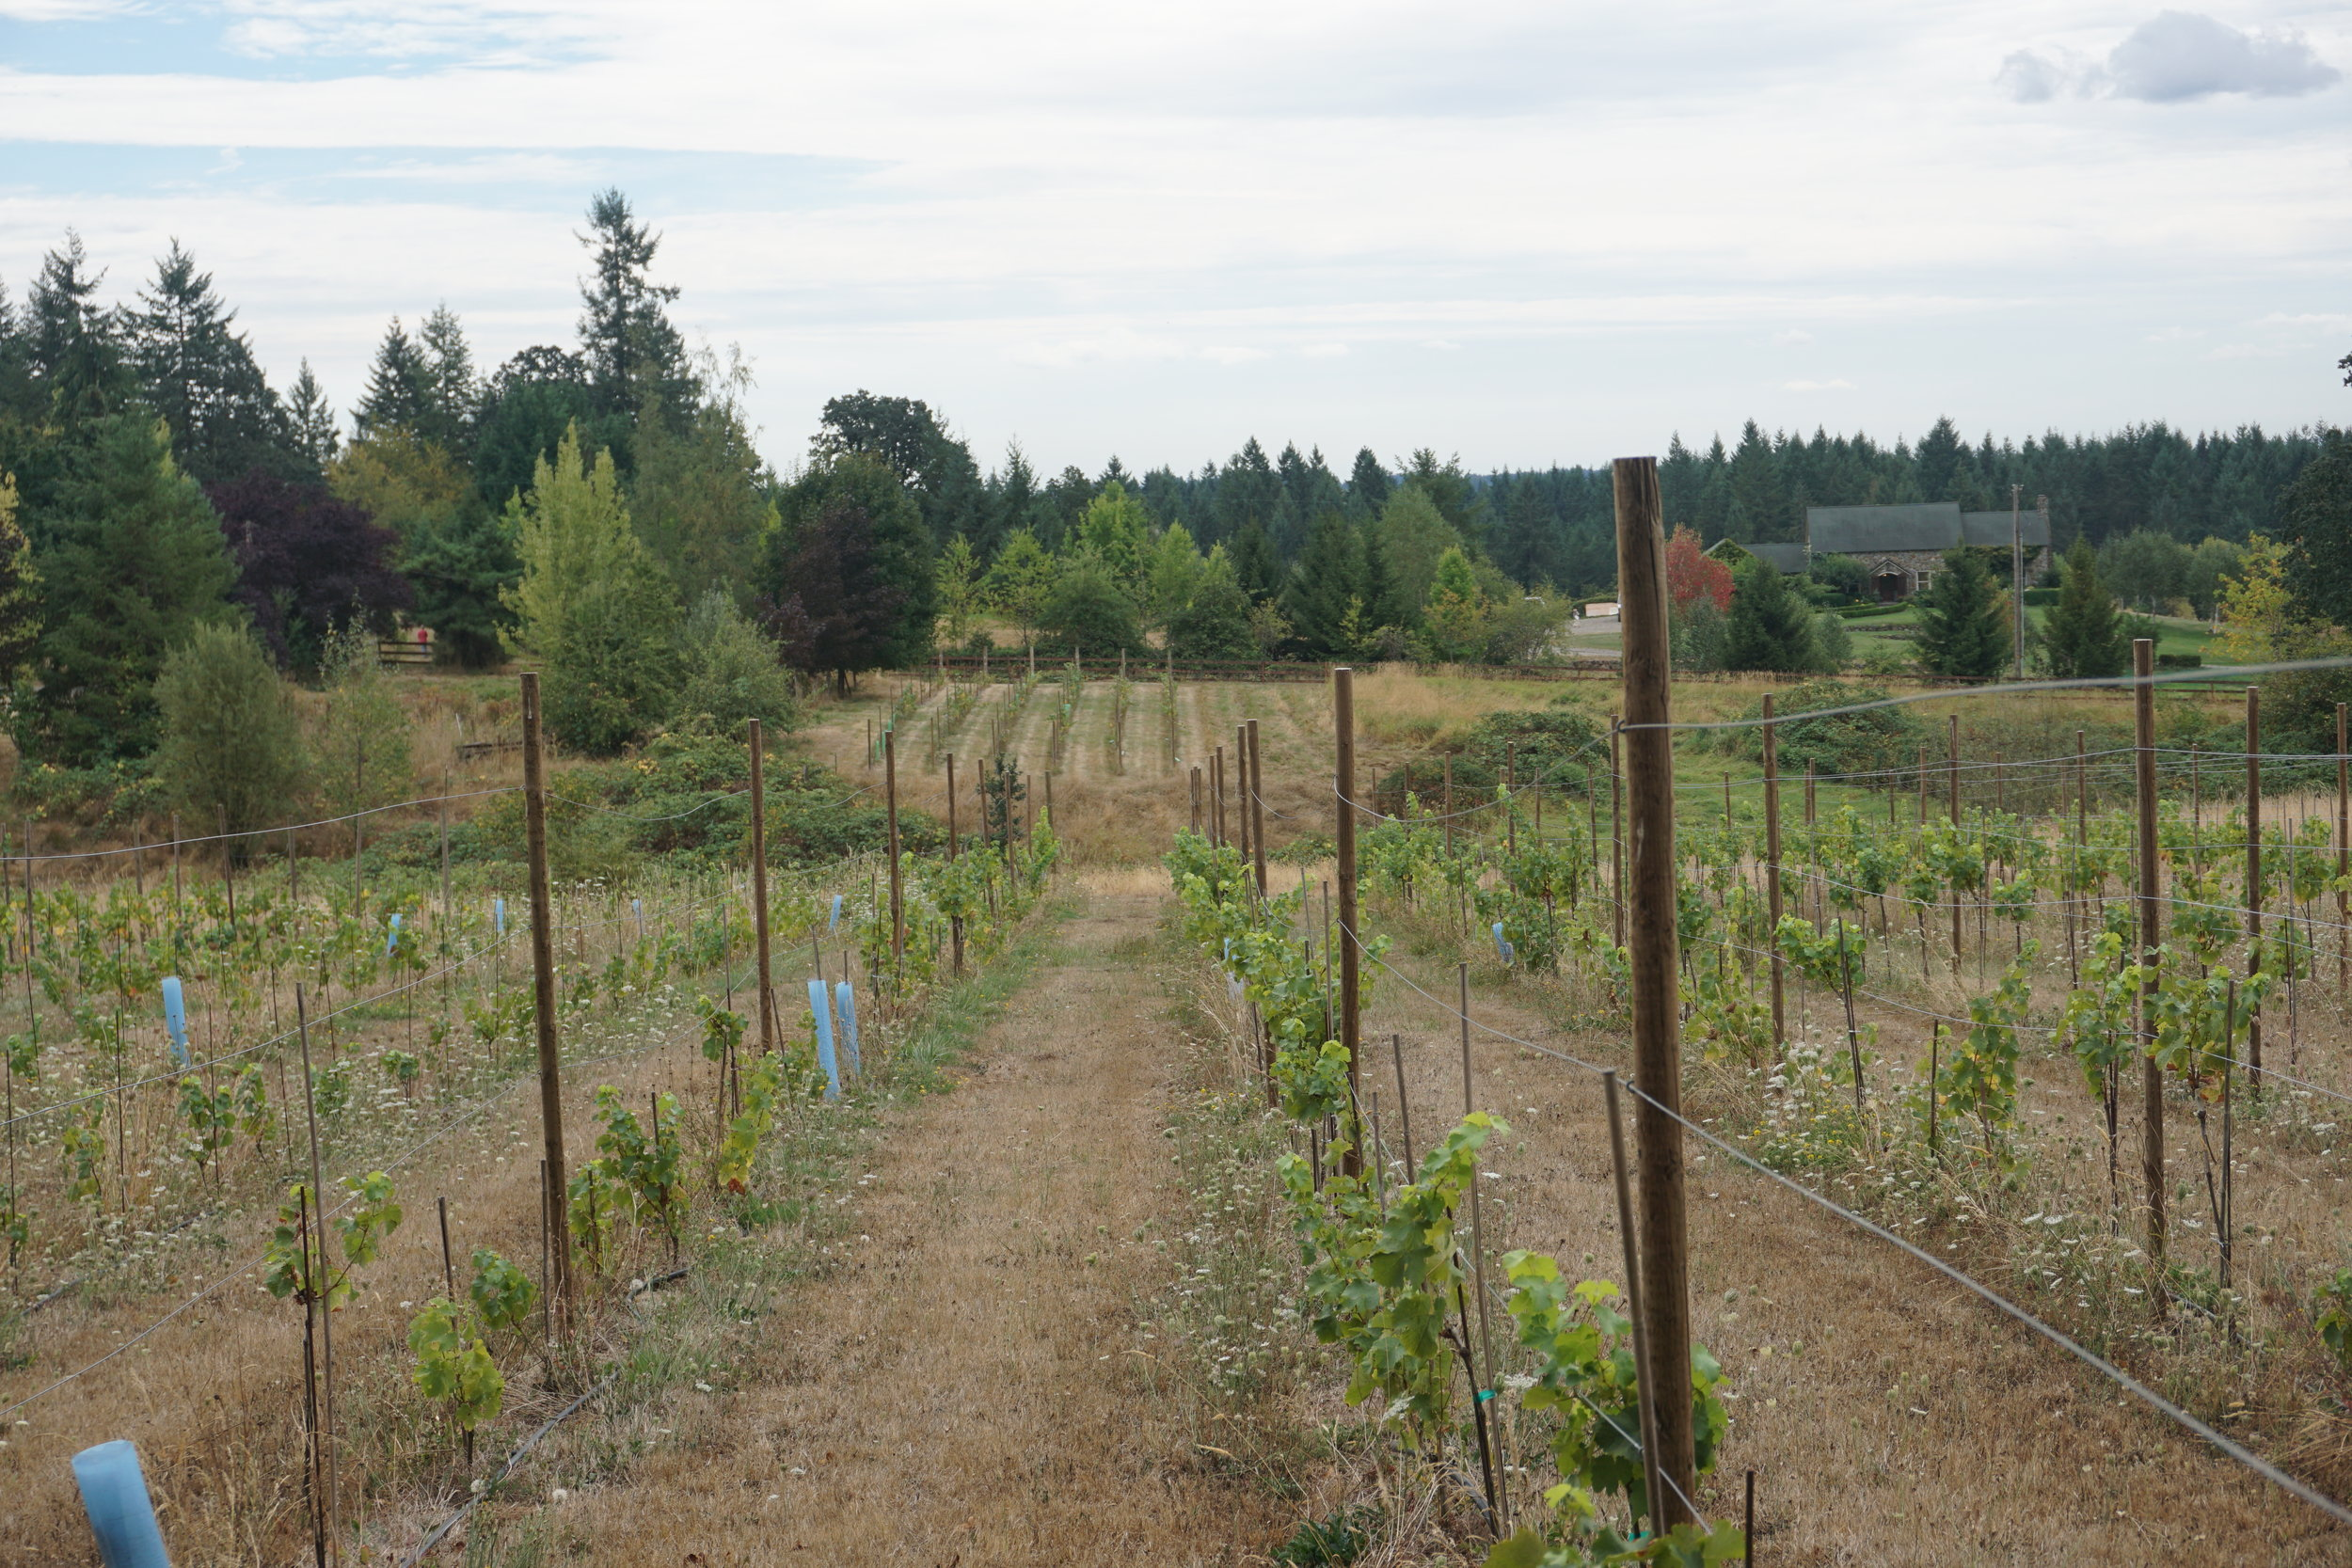 One-third of an acre planted in pinot meunier (shown in the background) is a telltale sign that Rezabek Vineyards has all the makings for estate-grown sparkling wine. Viki Eierdam